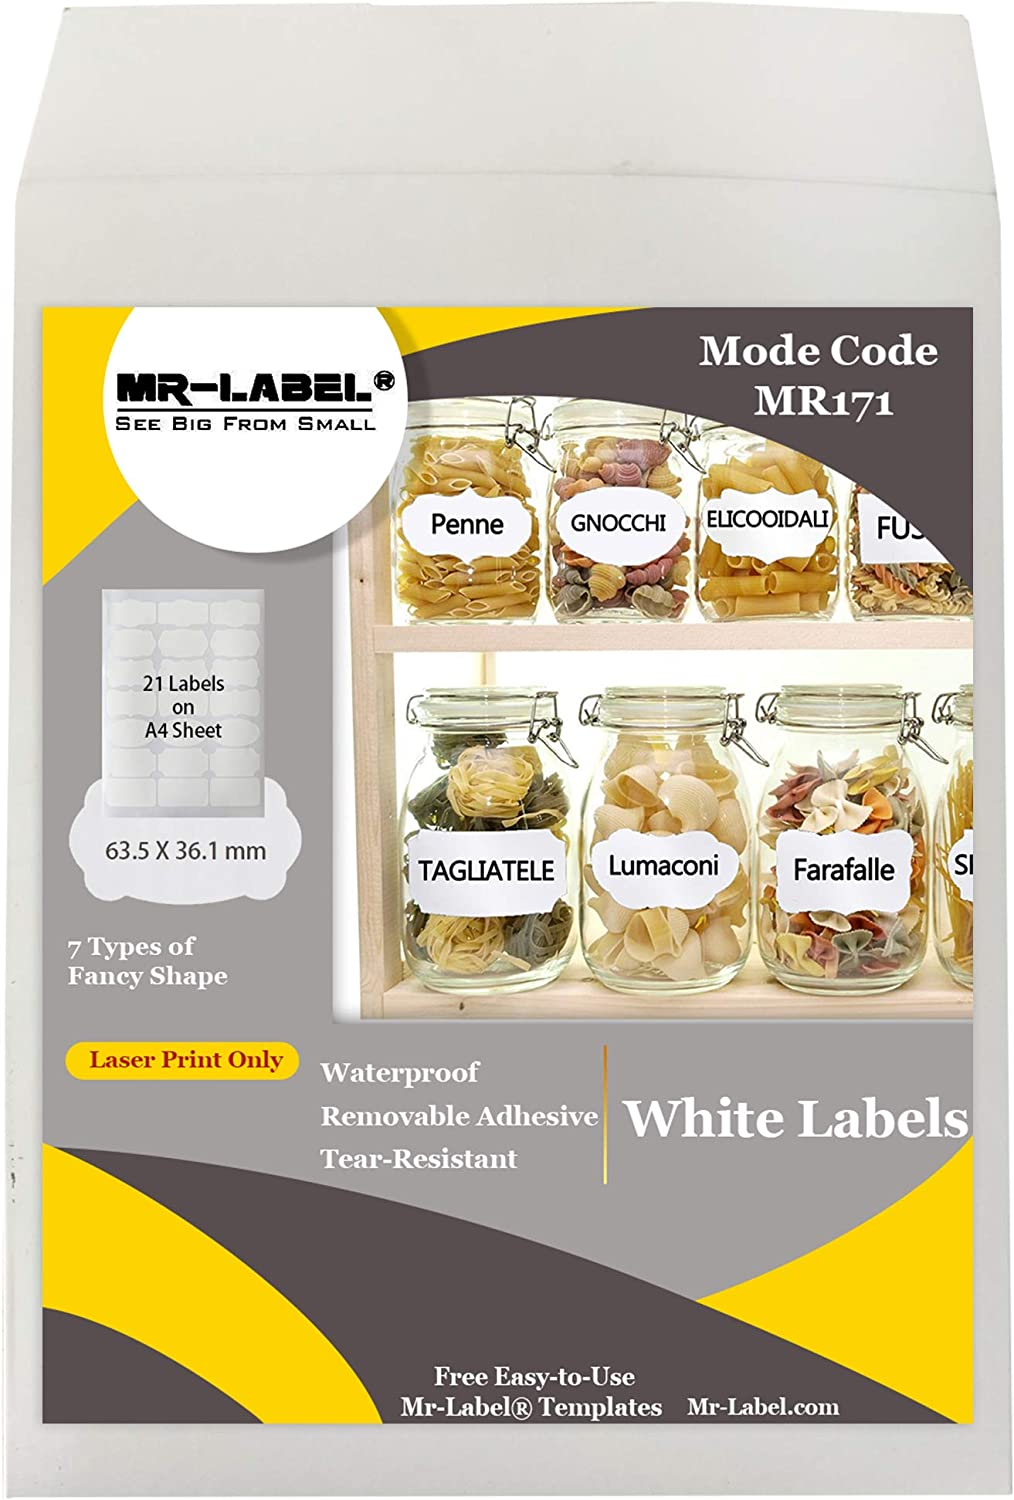 Mr-Label 7 Types of Fancy Shape Waterproof Removable Adhesive Labels – Tear-Resistant Stickers for Kitchen Use | Oil Bottles | Organizing and Filing - Laser Printer Only (Size: 63.5 mm x 36.1 mm)